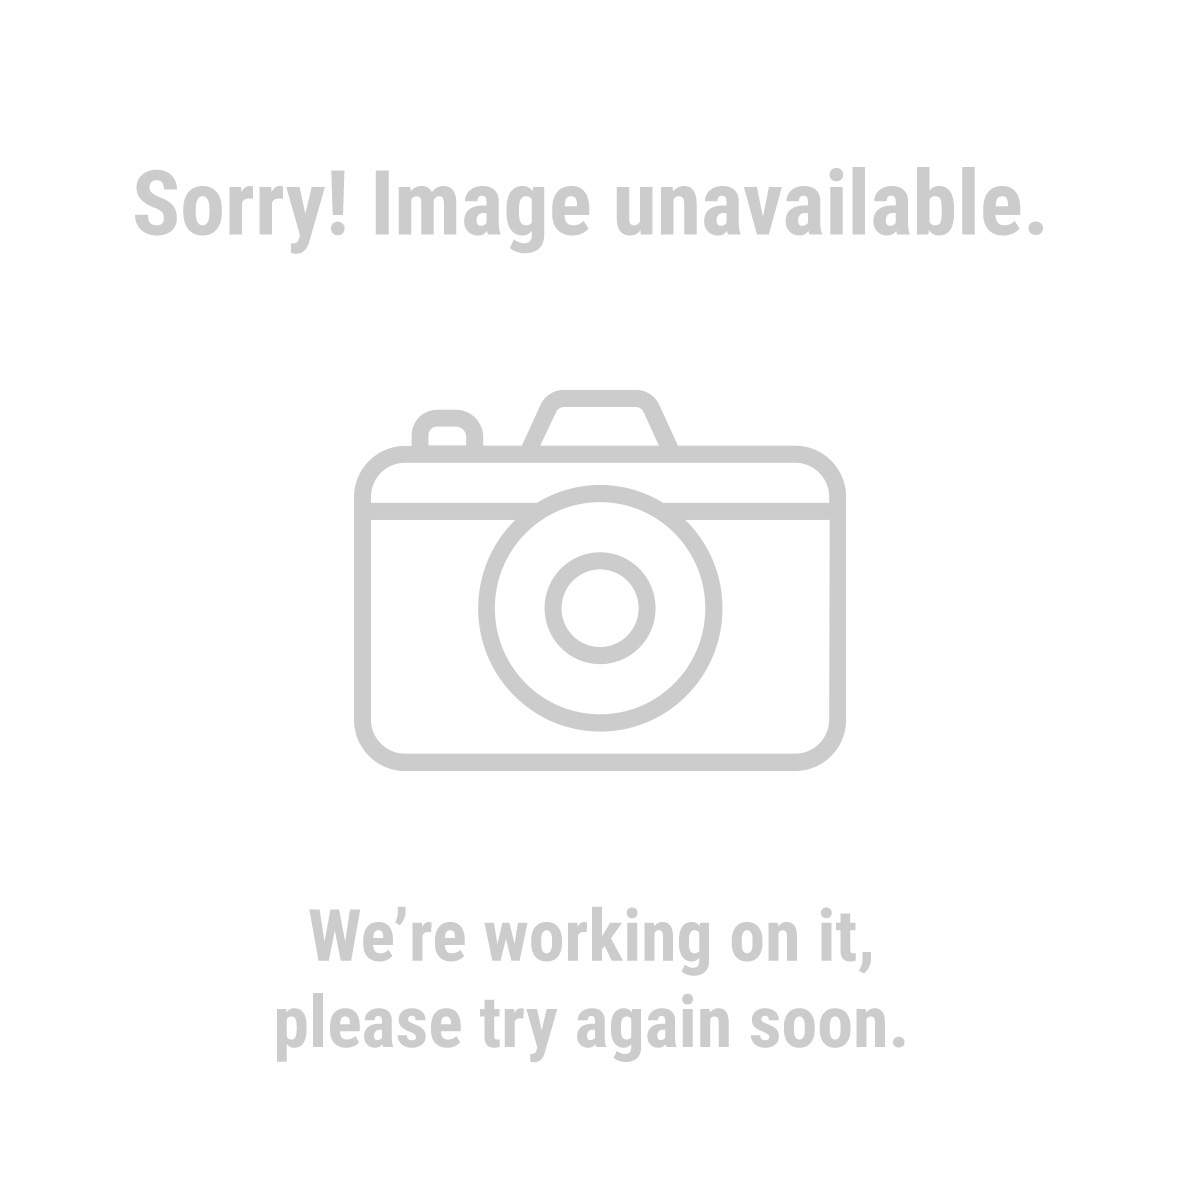 power tools Power tools just cost less at harbor freight tools electric power tools and cordless power tool kits on sale everyday with amazing discount prices.